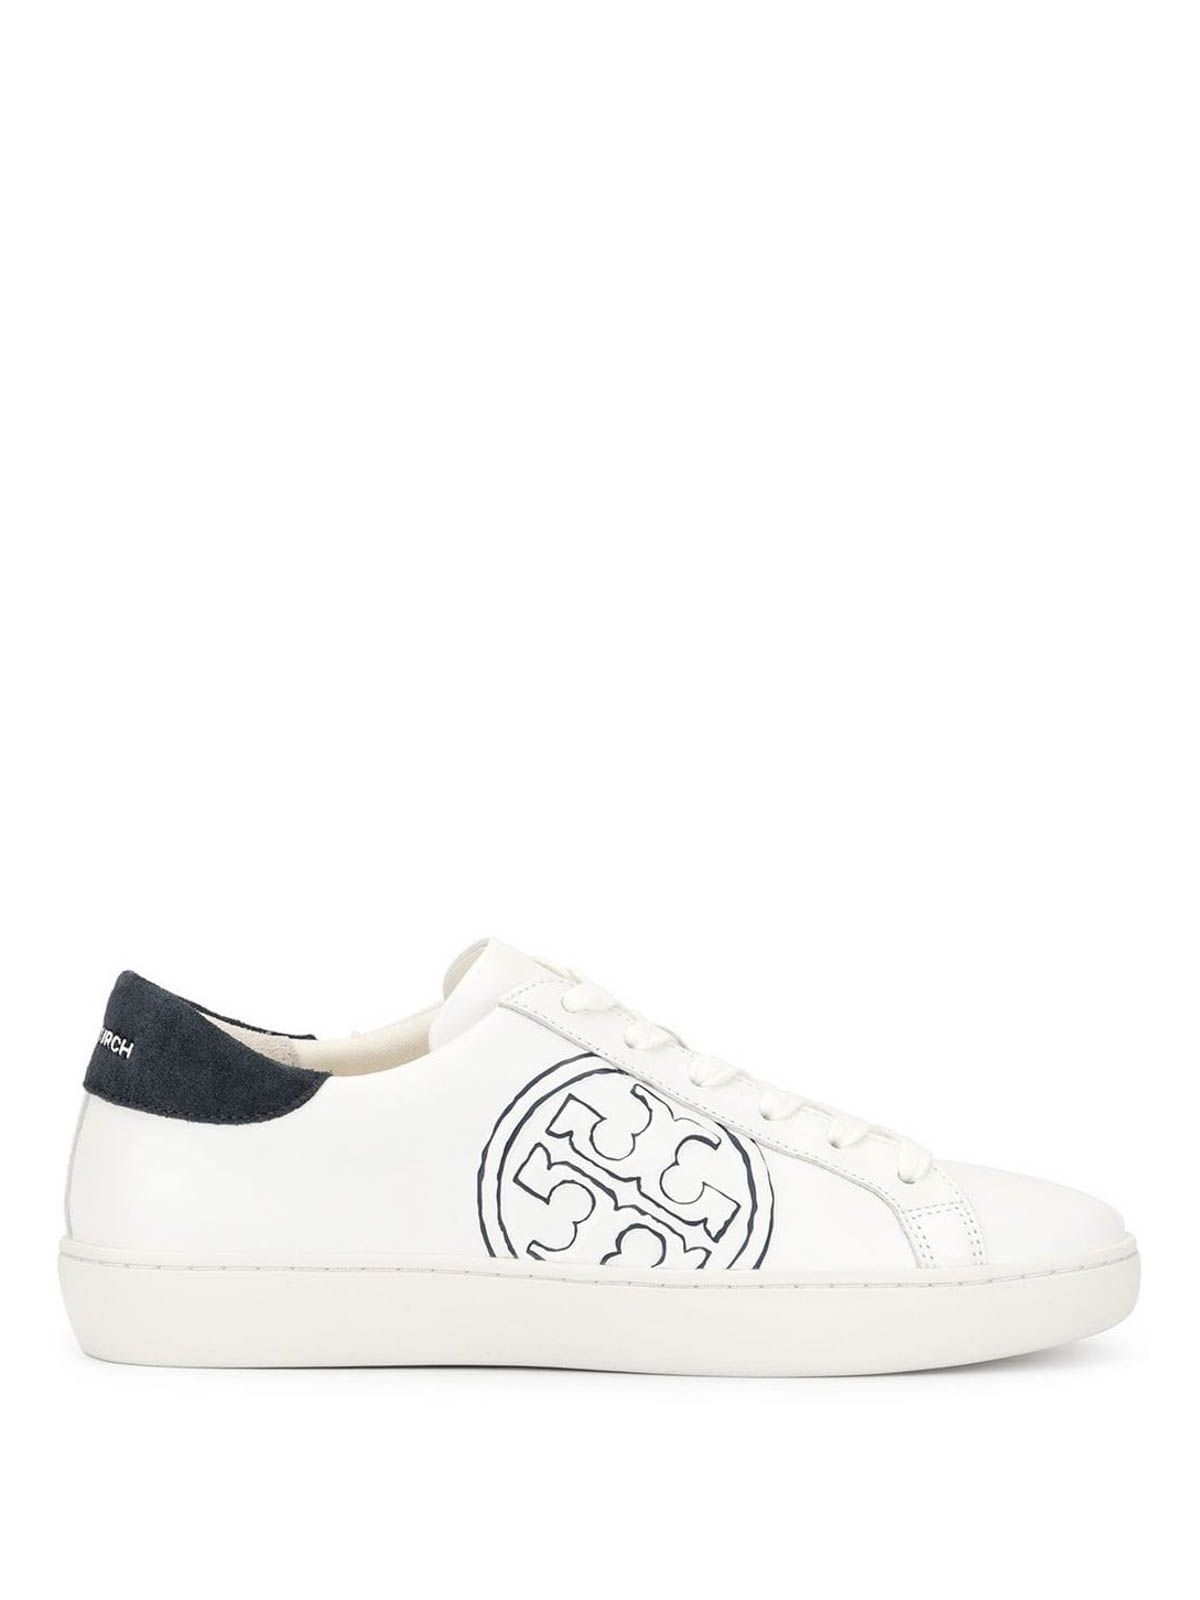 Tory Burch - T-Logo leather sneakers